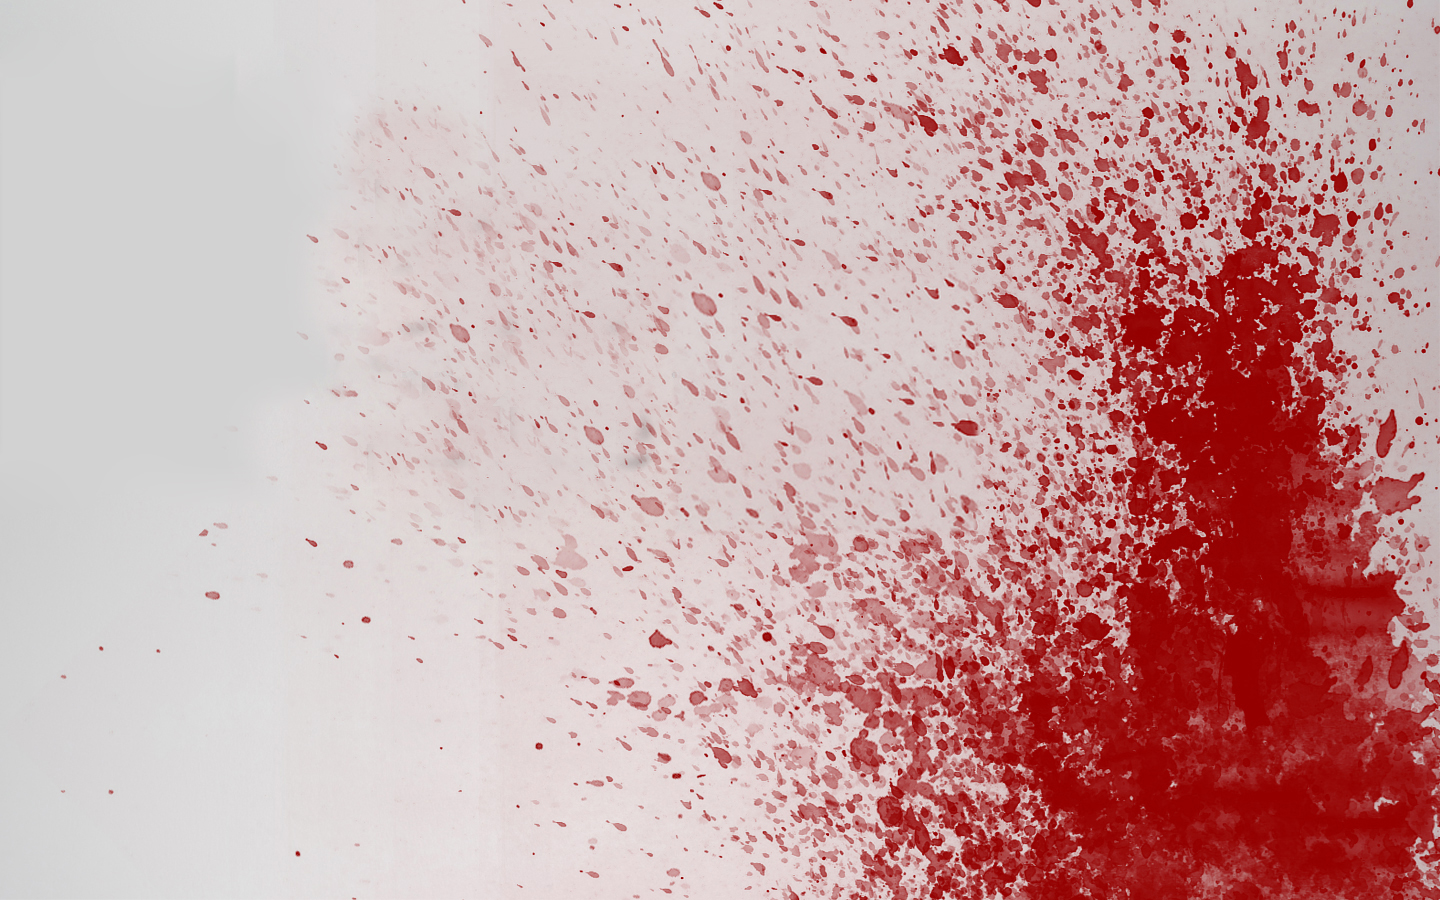 Blood Splatter PPT Backgrounds